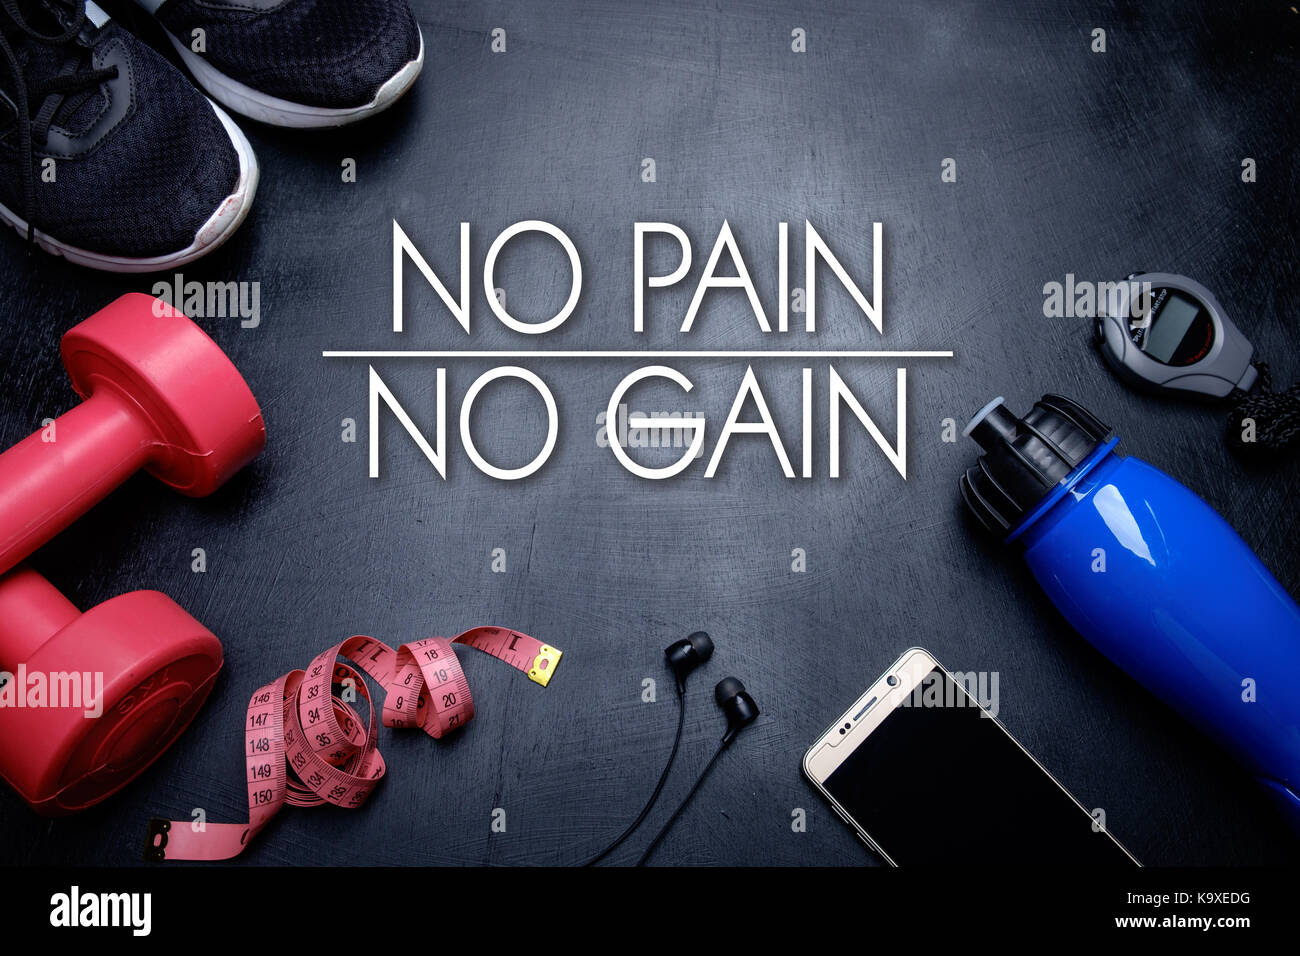 No Pain No Gain Health Fitness Motivational Quotes Stock Photo